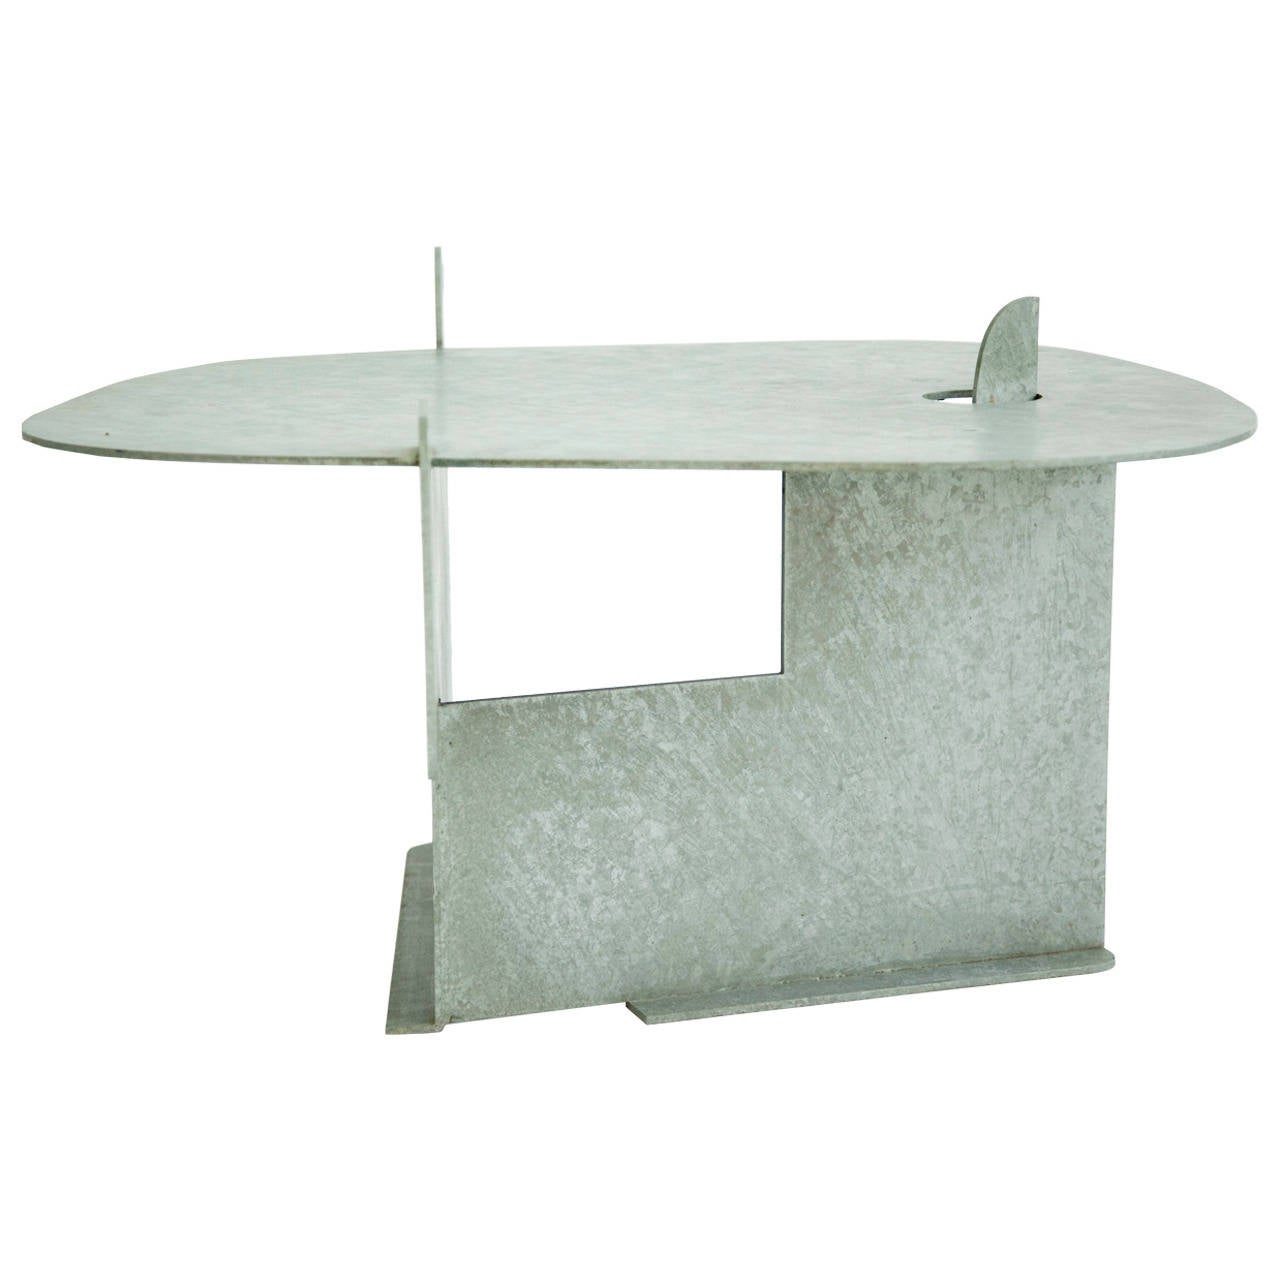 Isamu Noguchi Pierced Table For Sale at 1stdibs